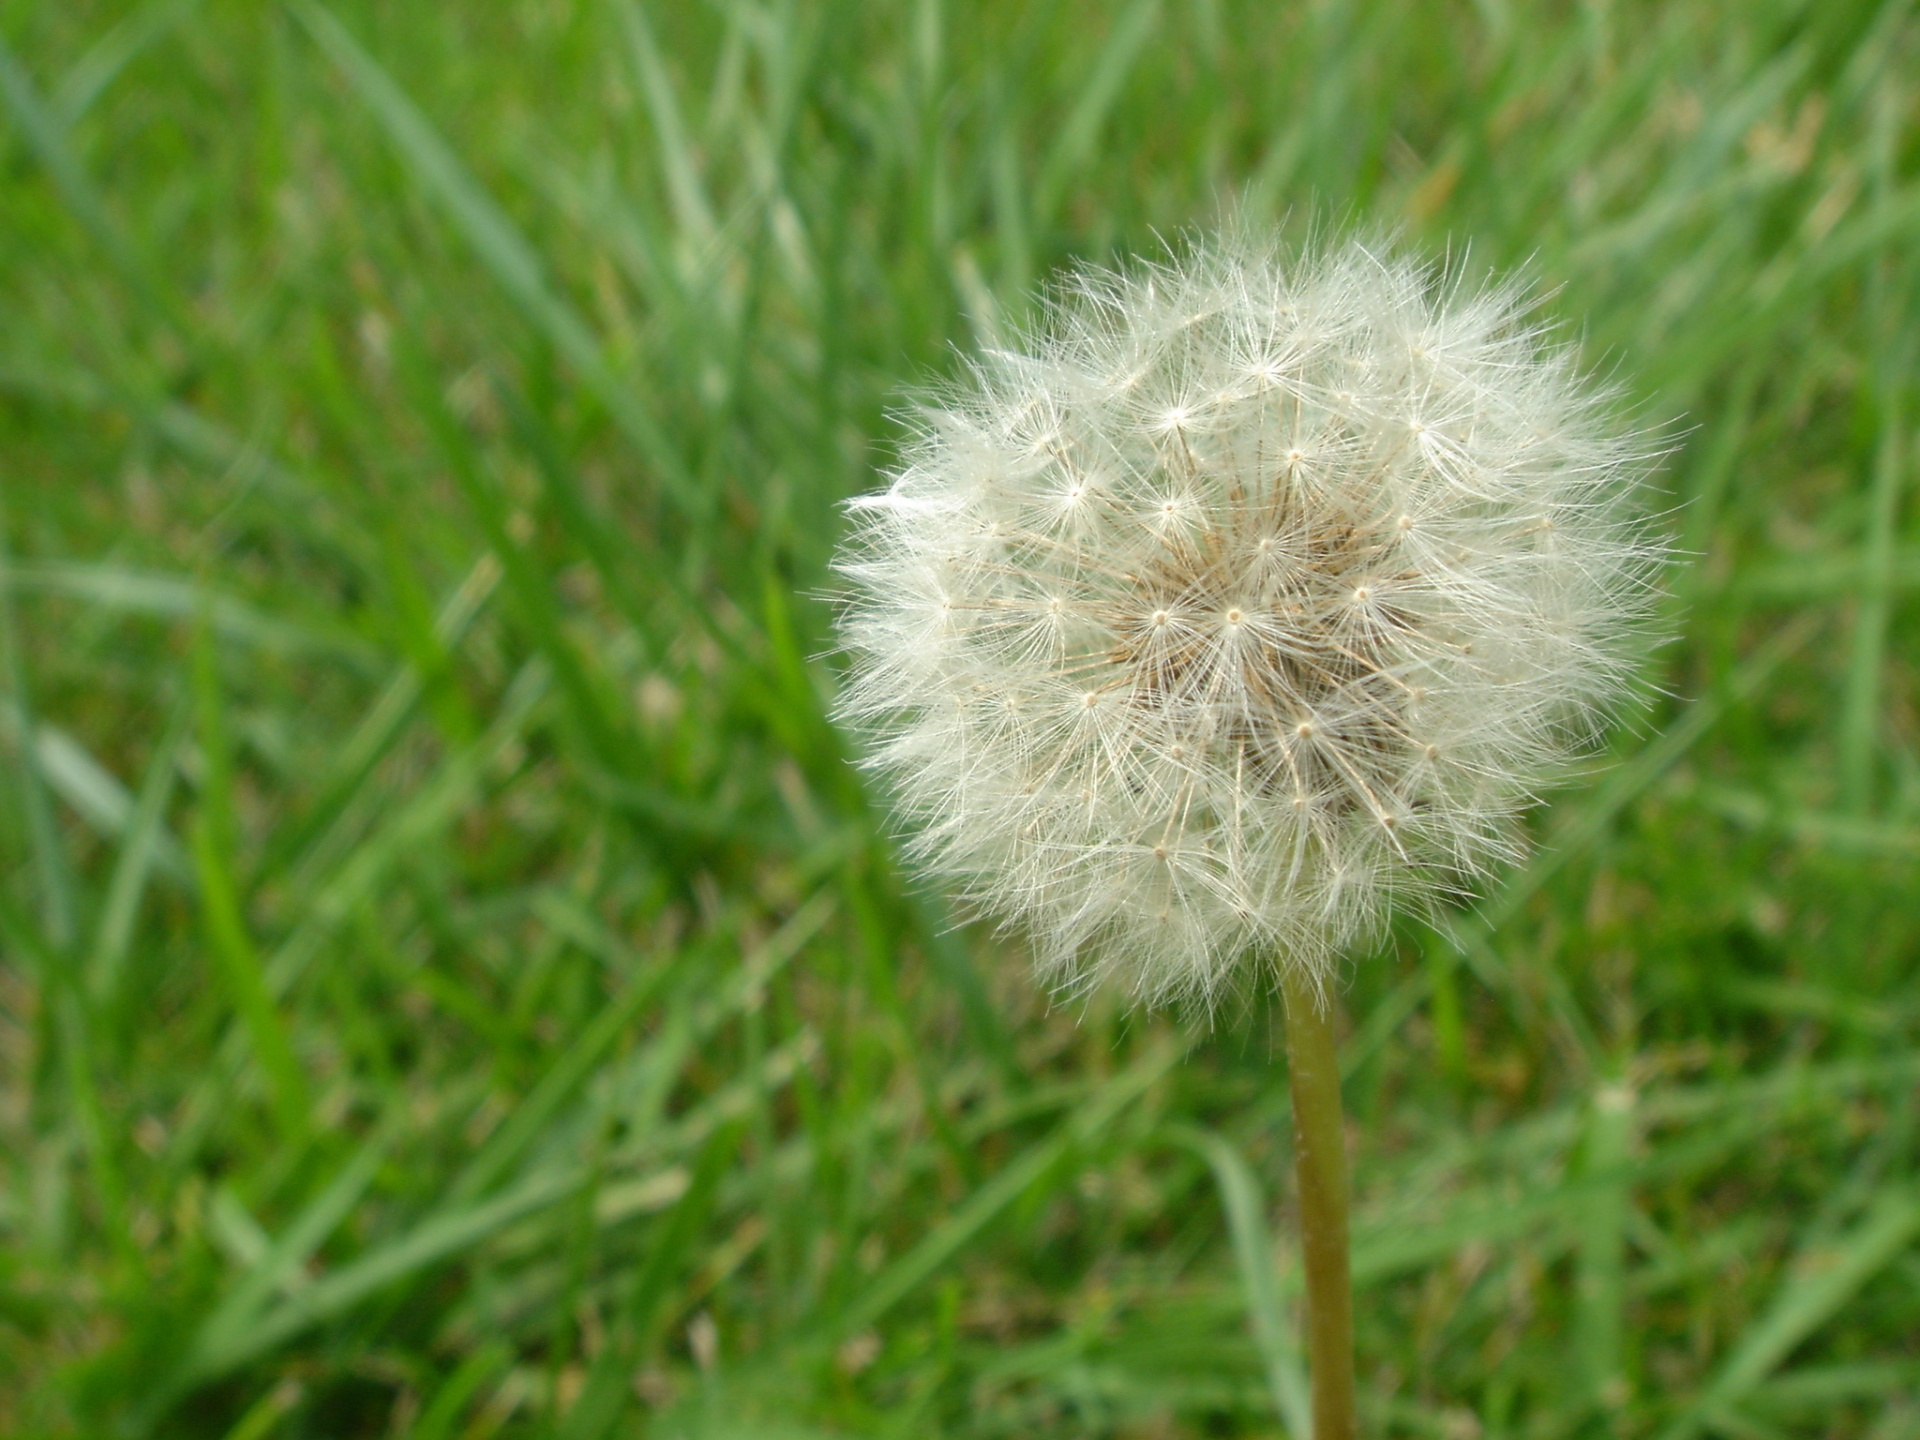 1920x1440 Dandelion desktop PC and Mac wallpaper 1920x1440